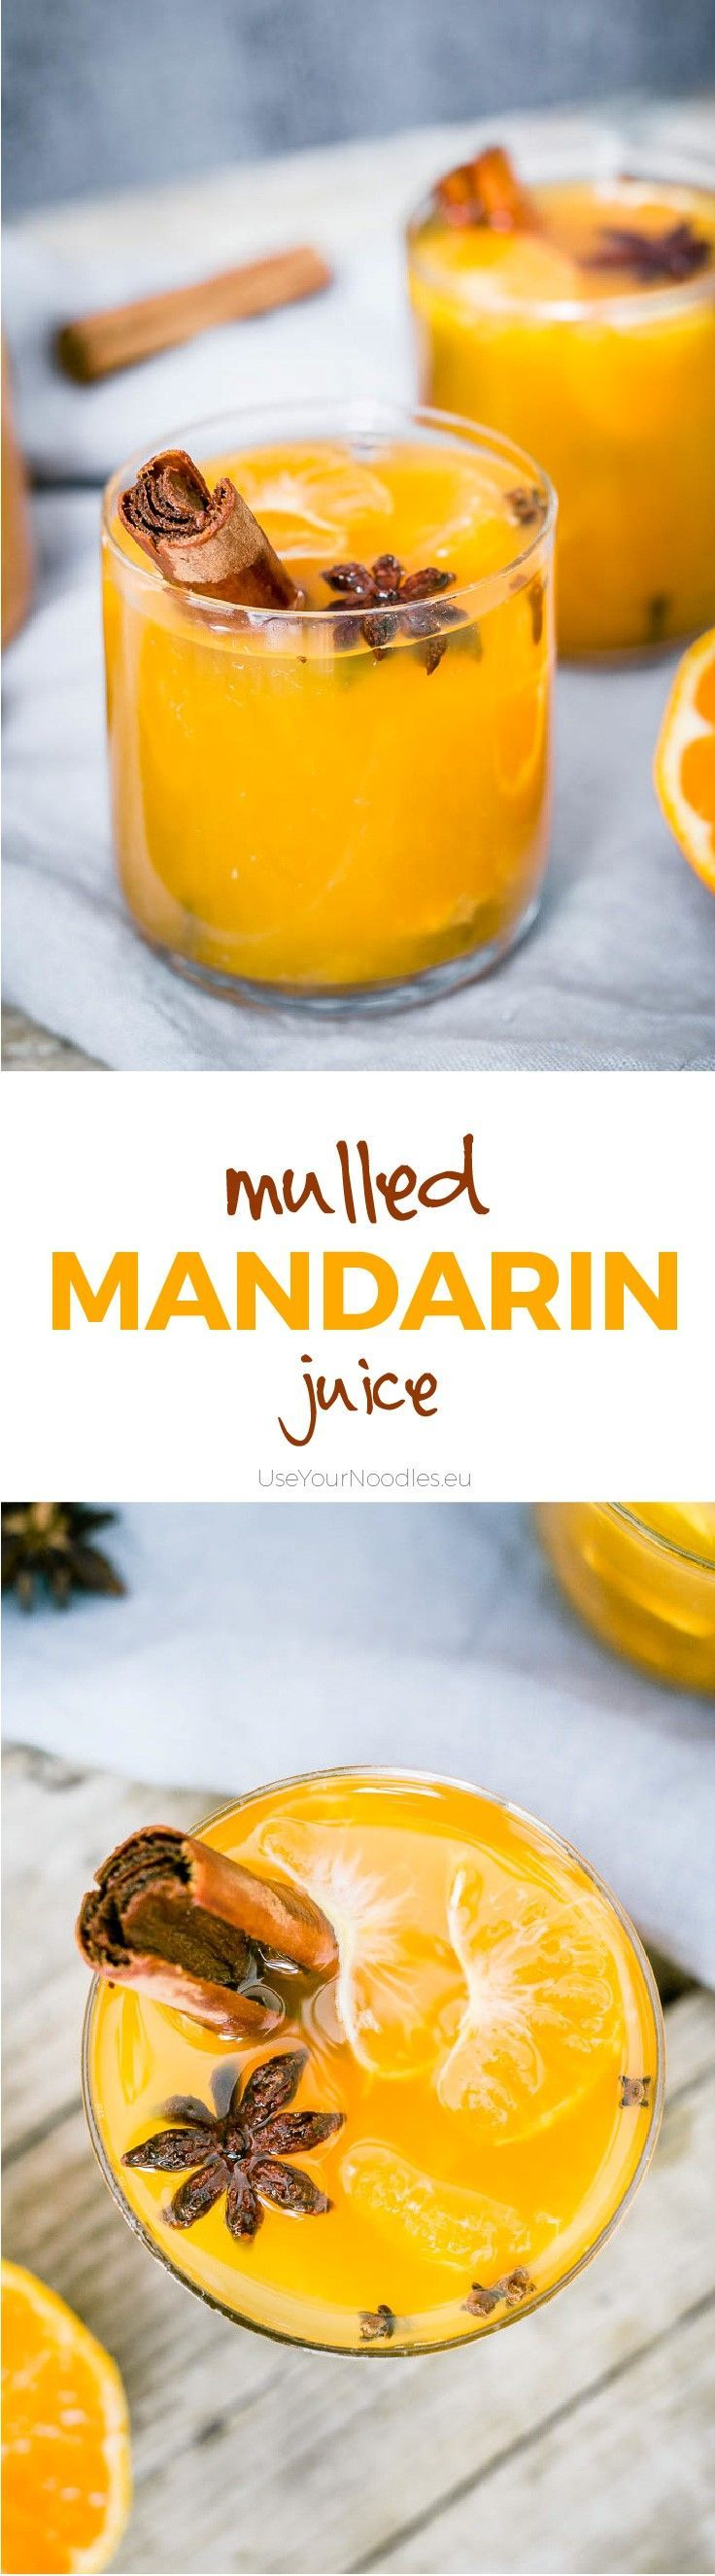 Easy to make from scratch warm autumn mulled mandarin juice spiced with cinnamon, cloves, ginger, peppercorn and star anis! Click to find the whole recipe or pin and save for later!